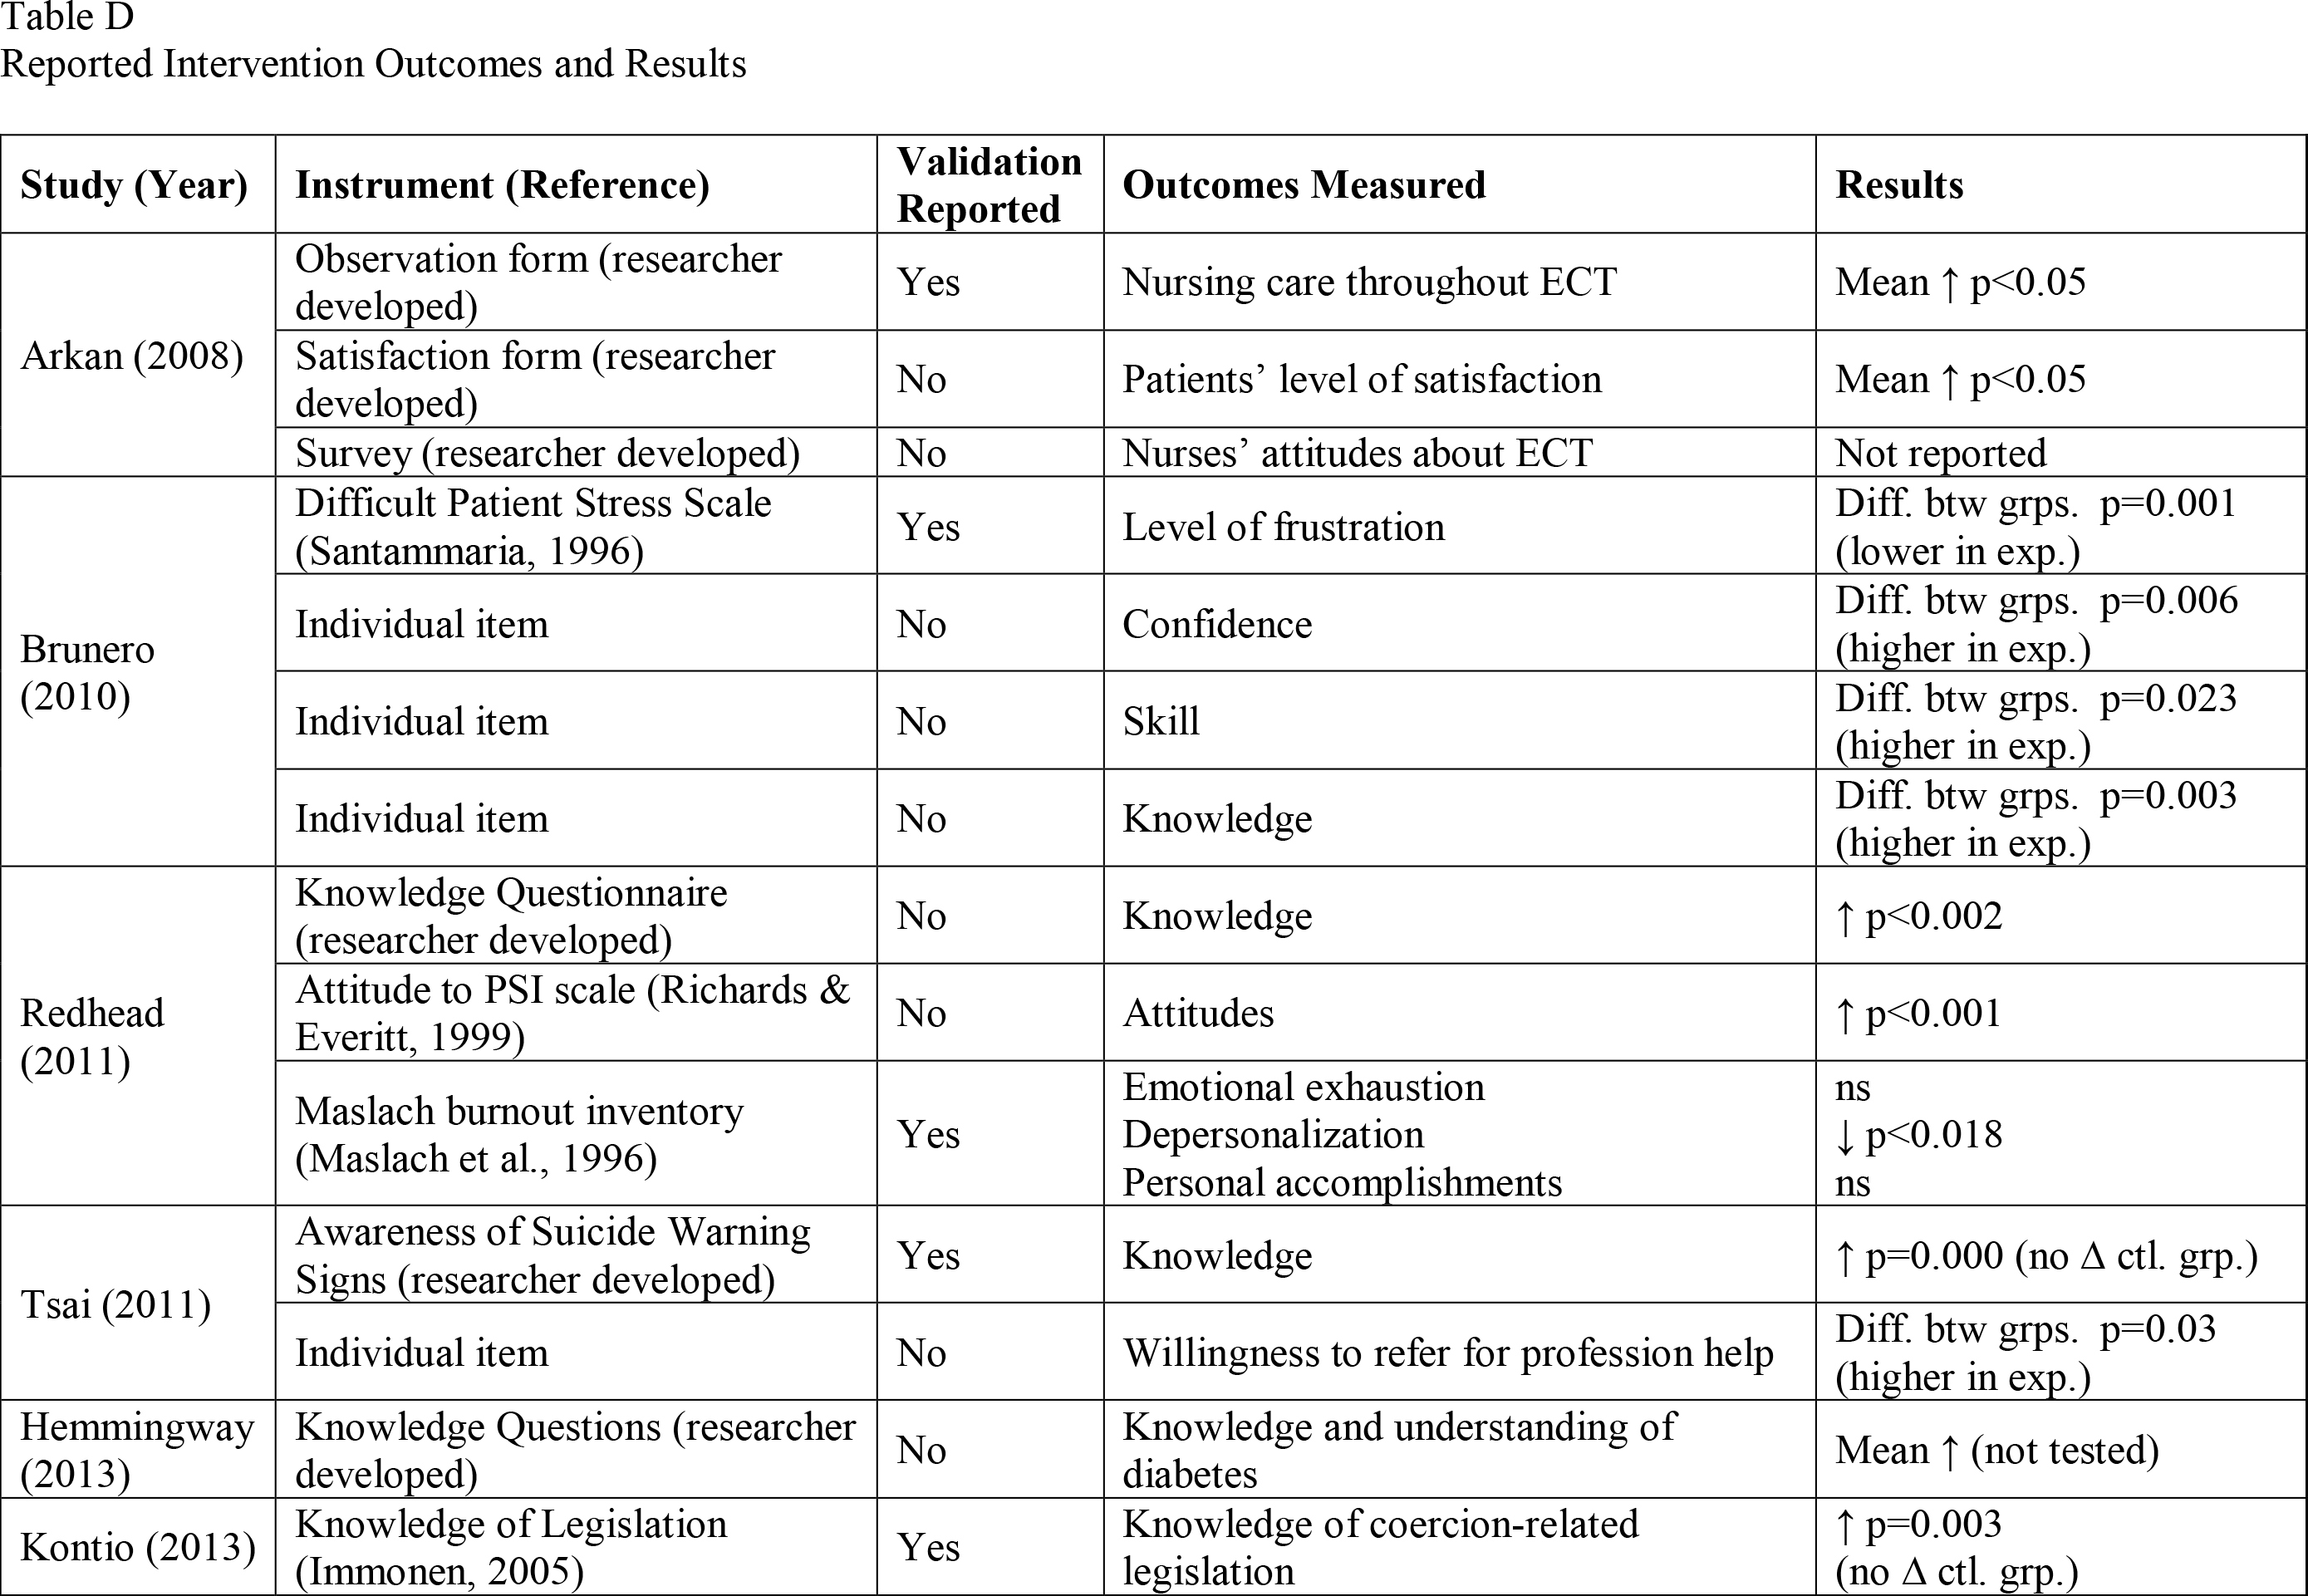 Reported Intervention Outcomes and Results